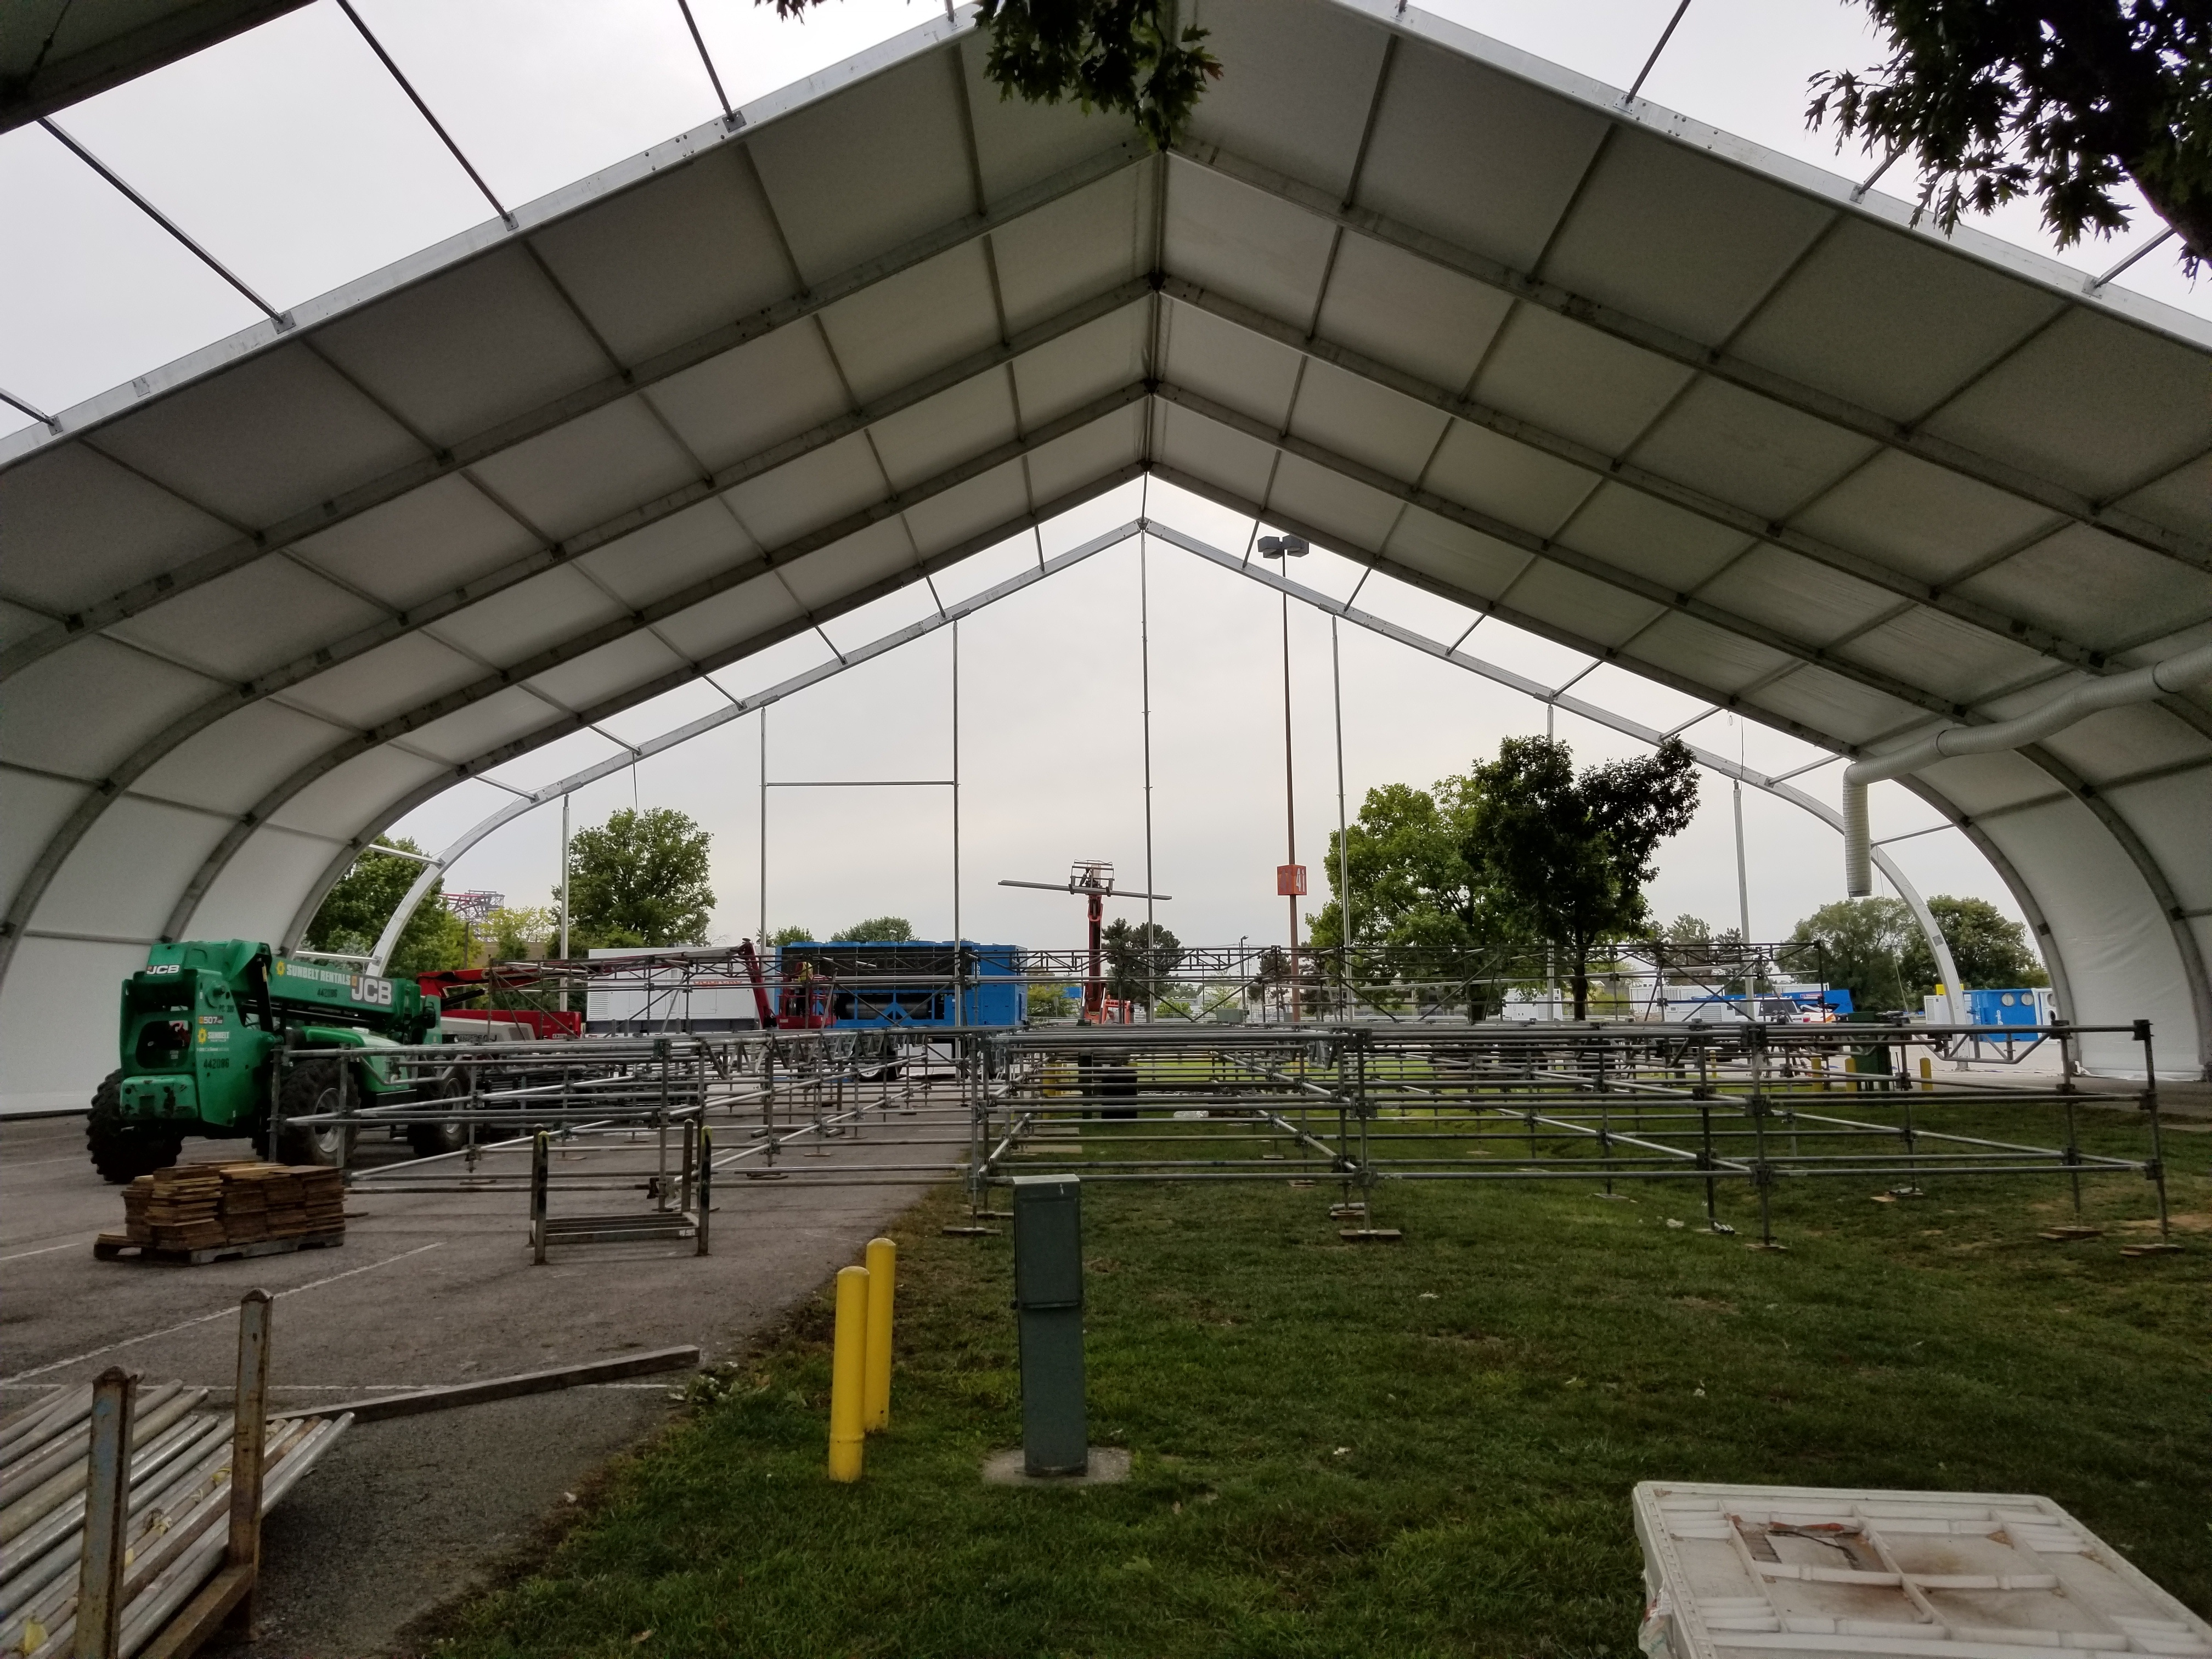 Temporary structure installation for trade show